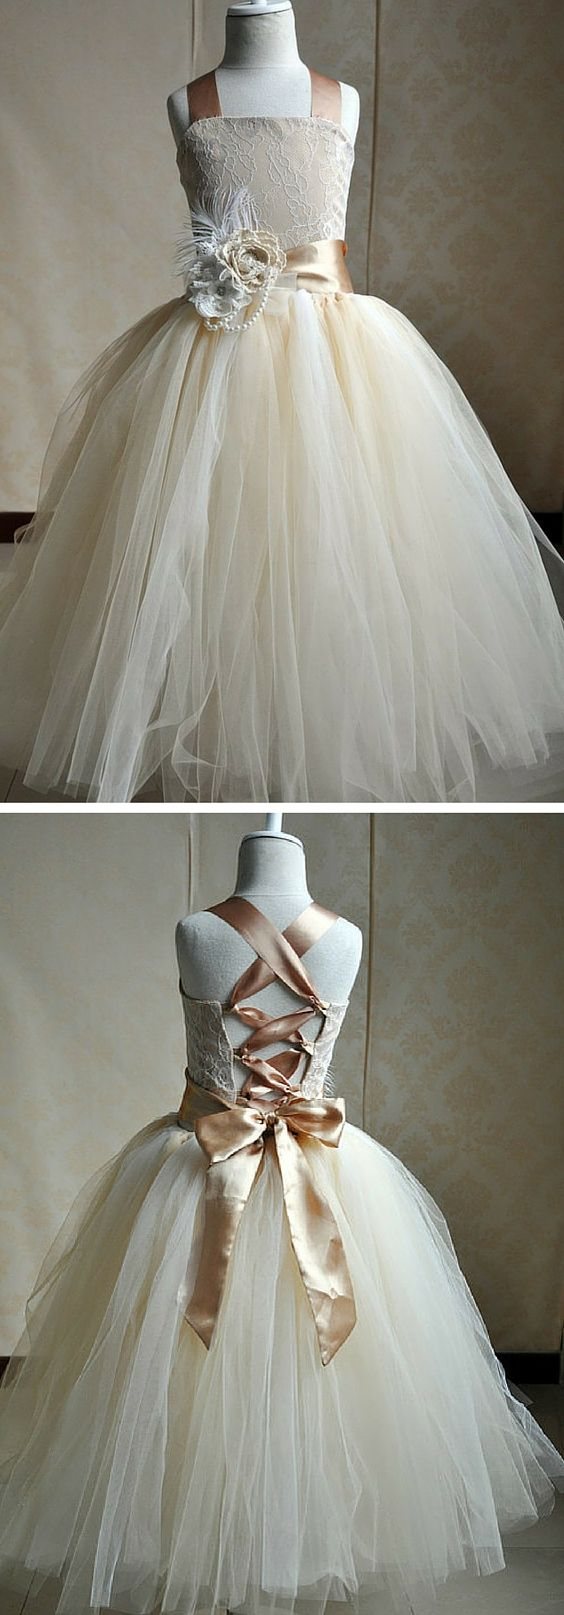 Champagne silk and tulle flower girl dress. This dress is a customer favorite and has amazing reviews! Your flower girl will feel so beautiful at your wedding.